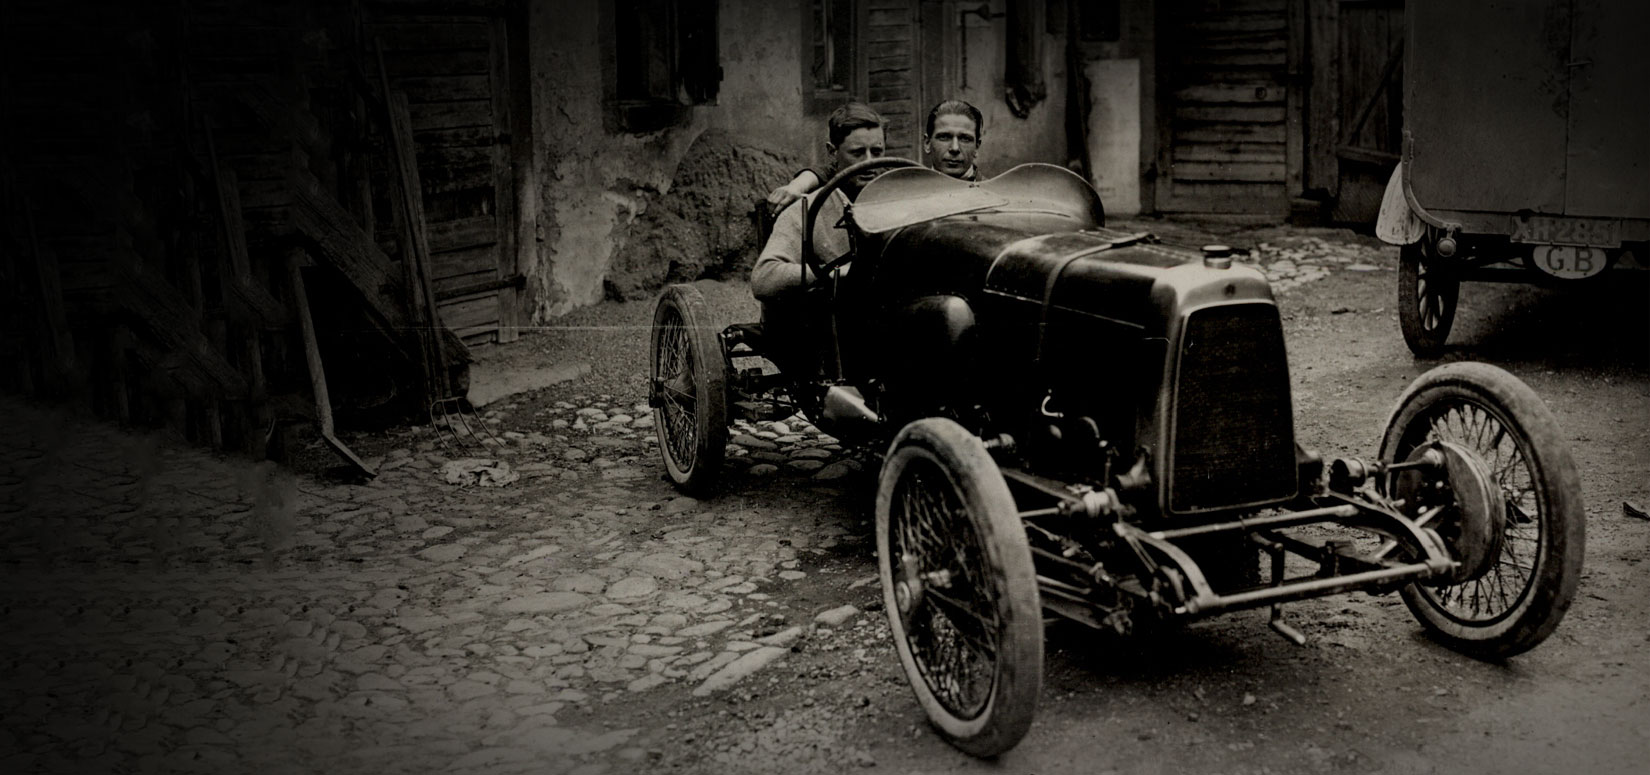 Aston Martin was founded in 1913 by Lionel Martin and Robert Bamford ...